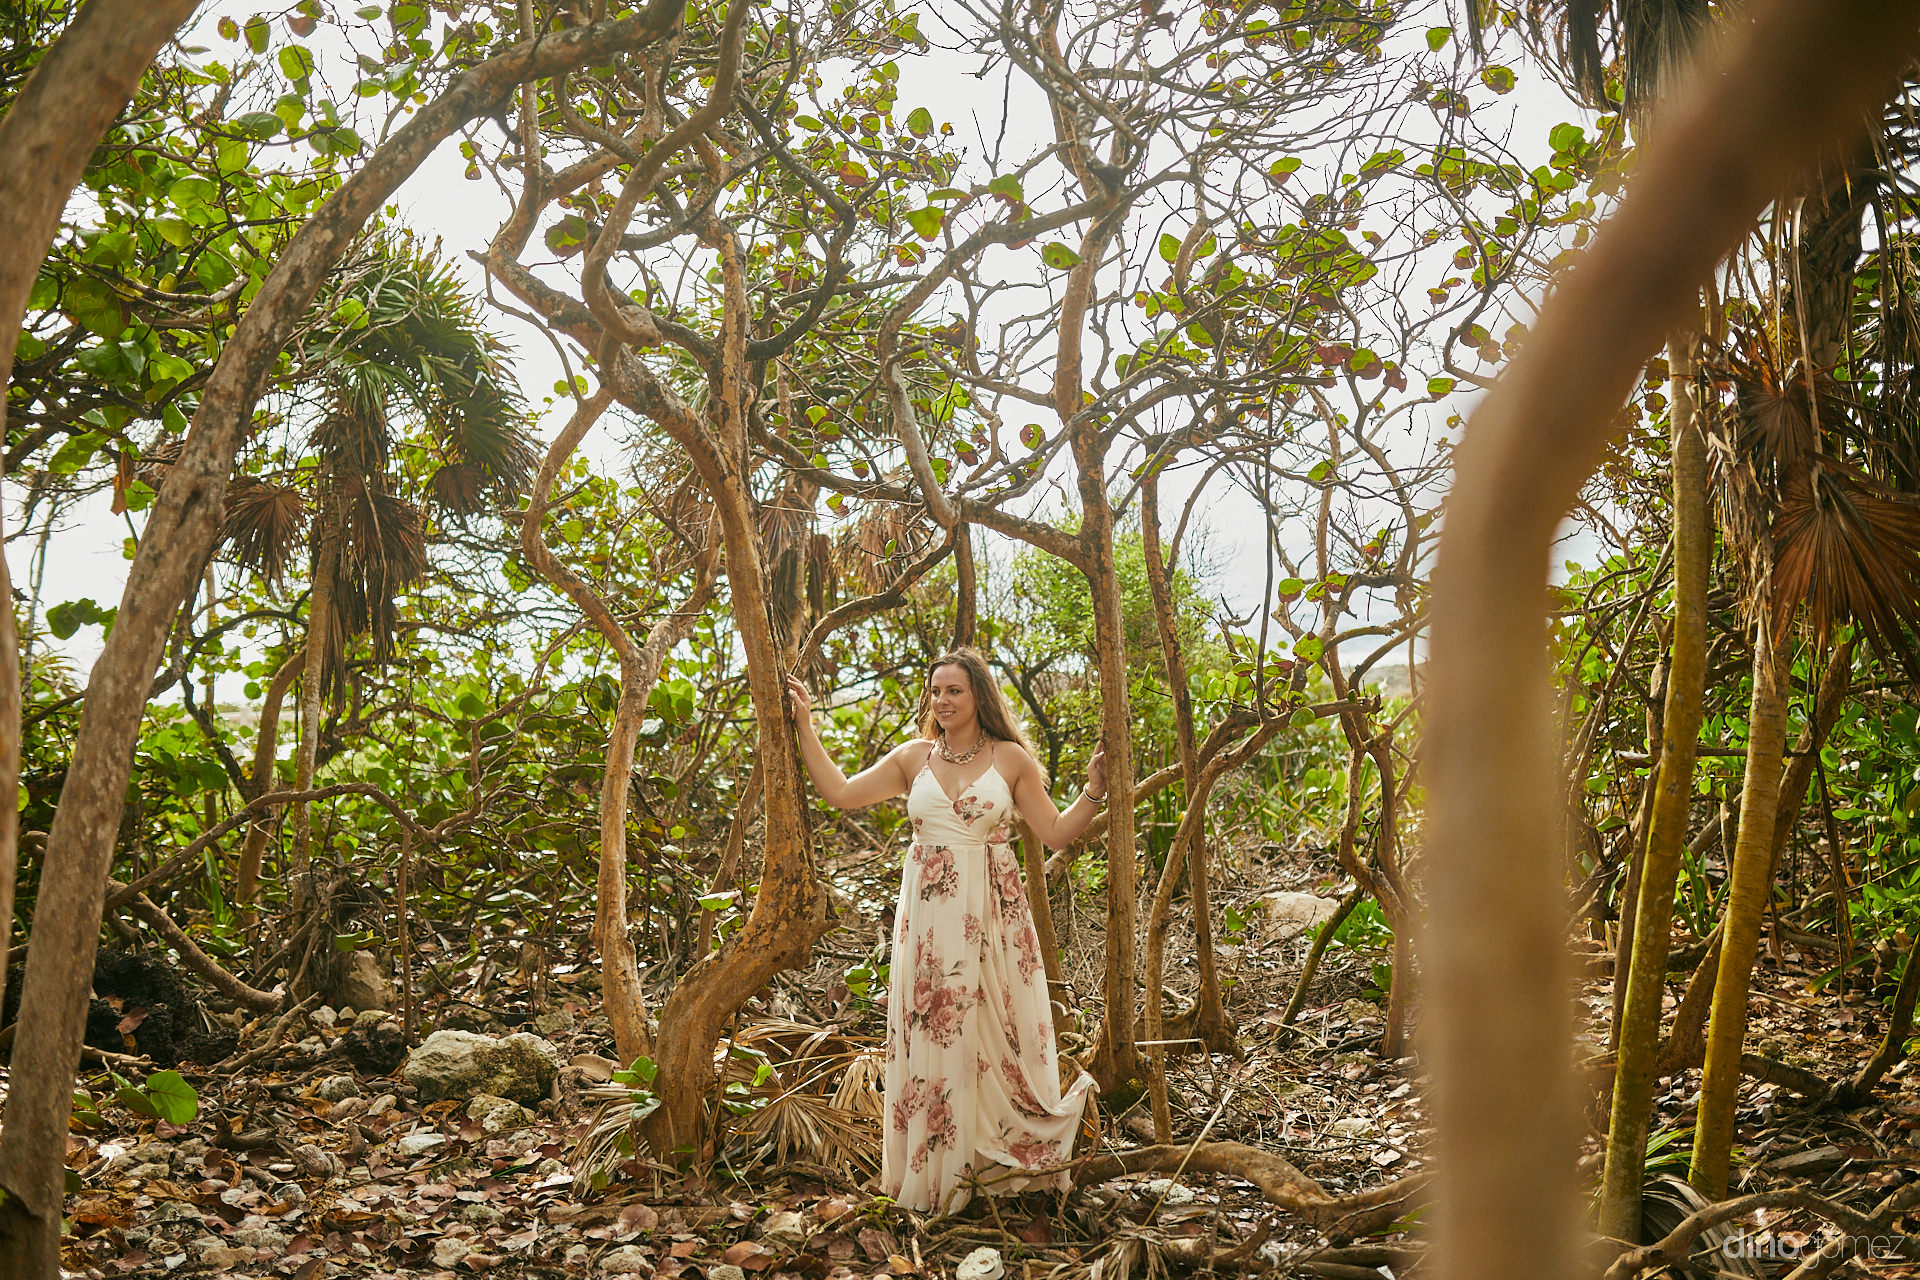 Grand Velas Wedding Photographer - Pdc - C&D